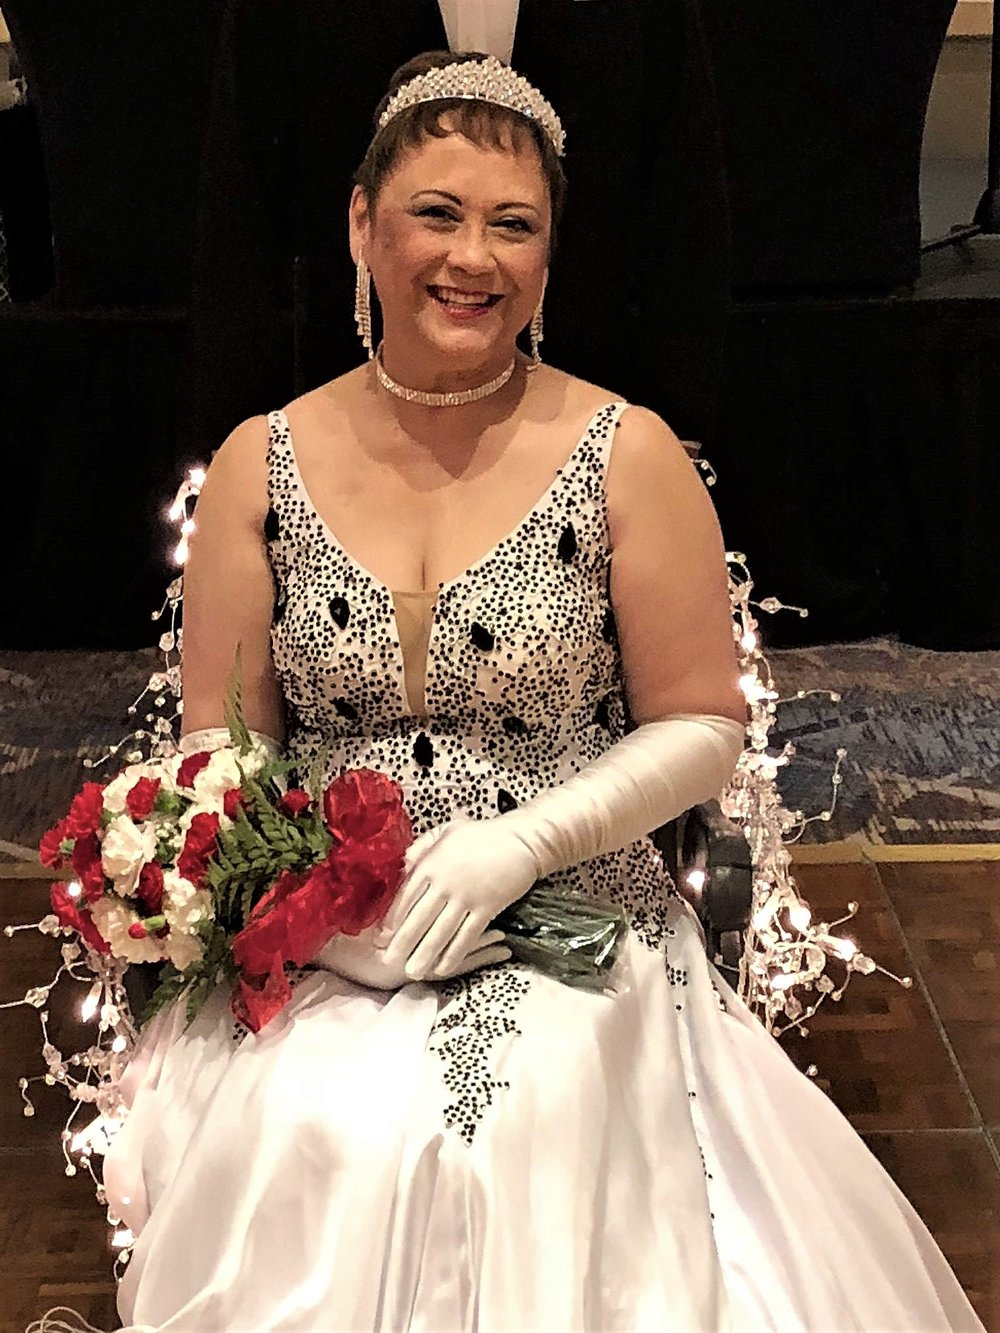 2018 Coronation-Queen Francy.jpg